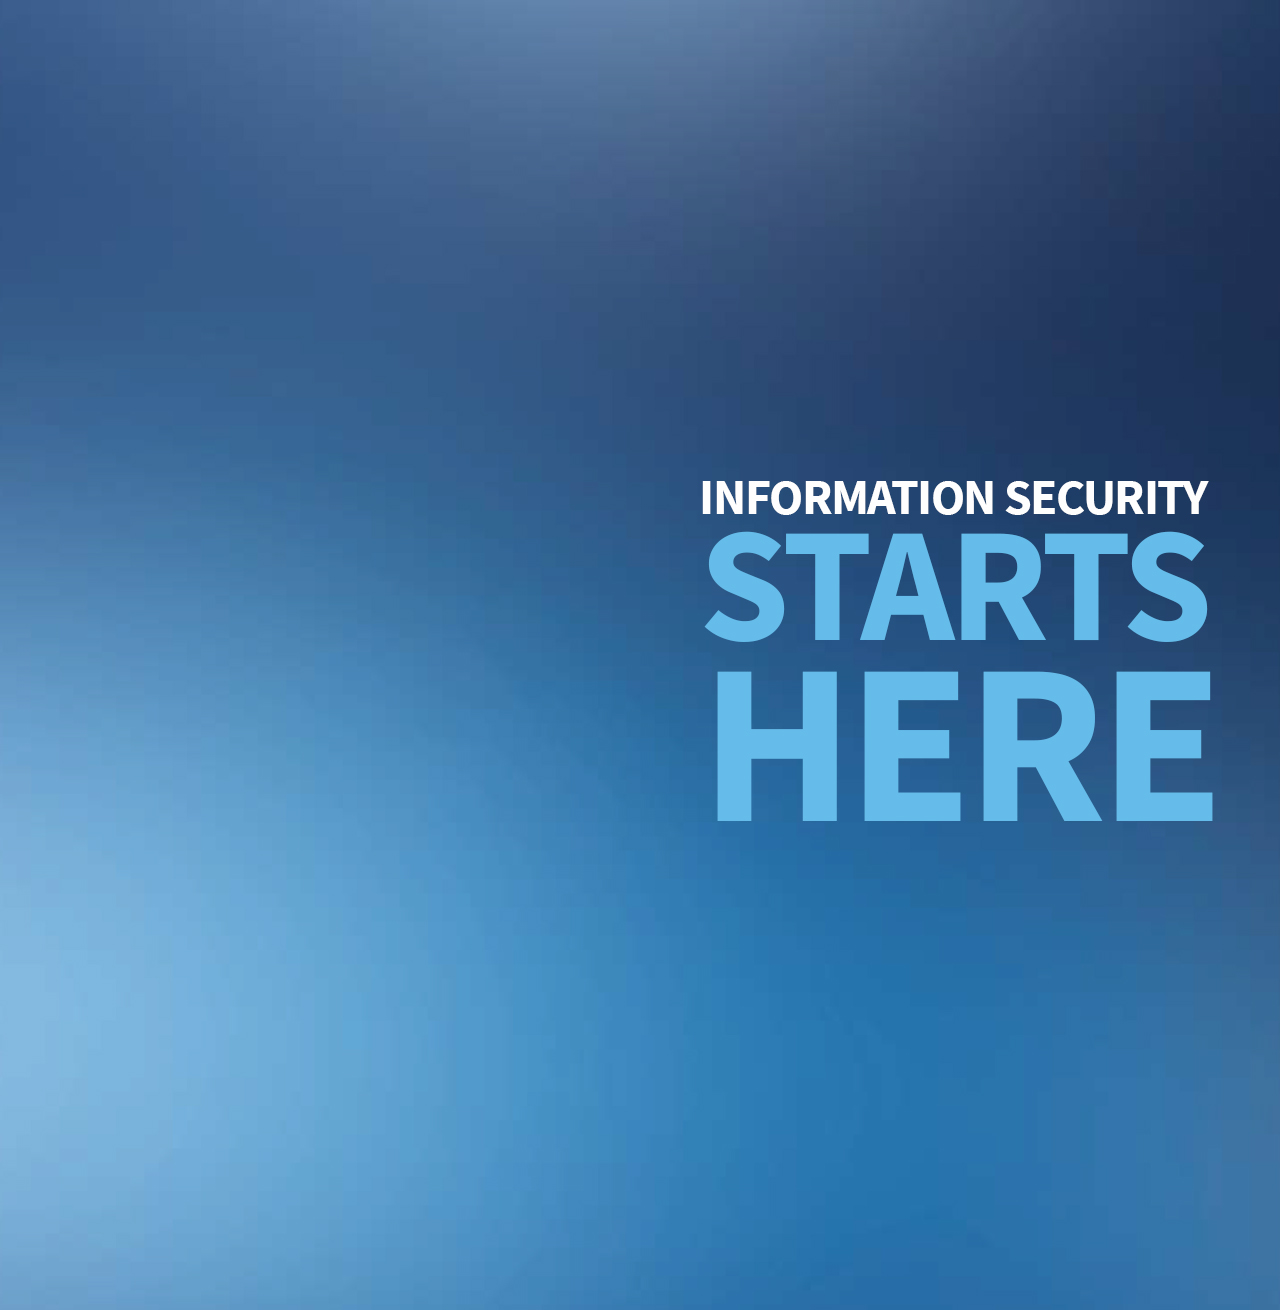 Infosecurity starts here